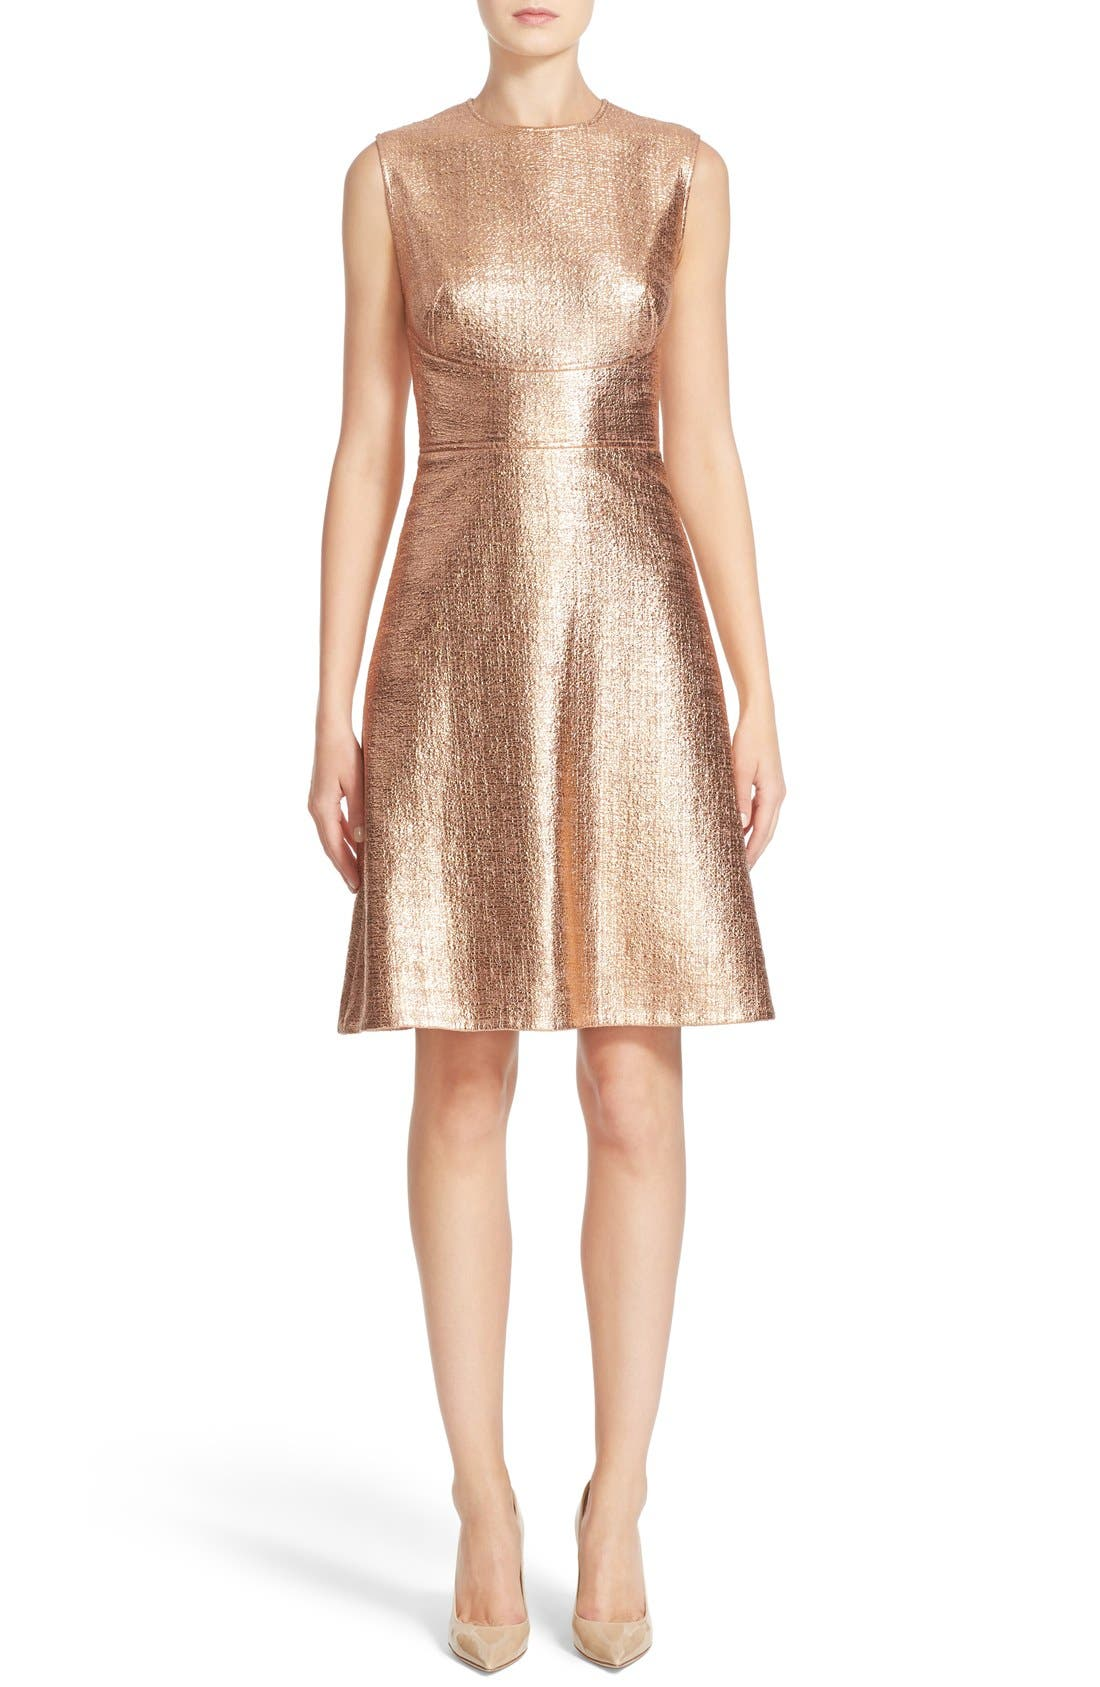 Alternate Image 1 Selected - Lela Rose Coated Metallic Seamed A-Line Dress